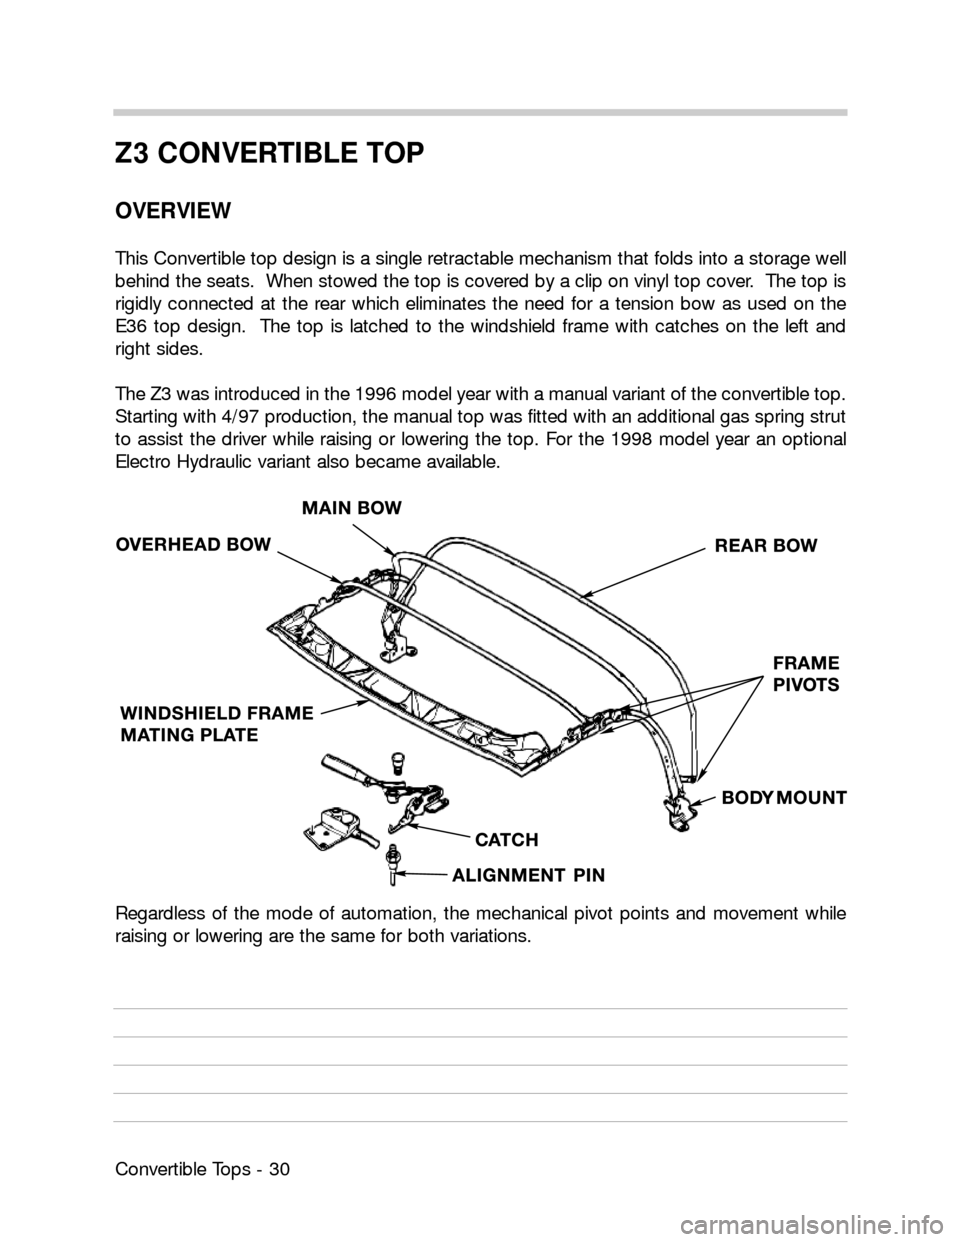 Bmw Z3 Convertible Top Wiring Diagram Yamaha Blaster Wire Diagram M1010 Wiring Diagrams